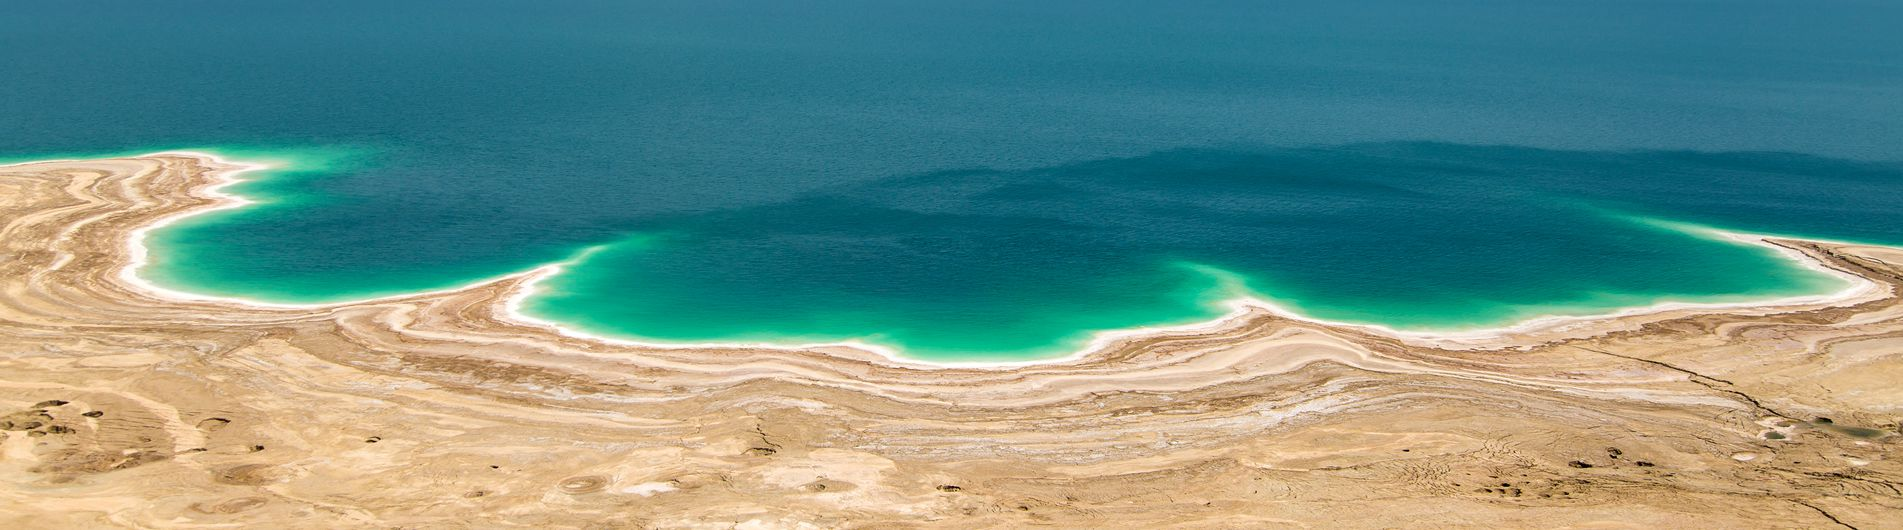 Dead Sea, Jordan Holidays